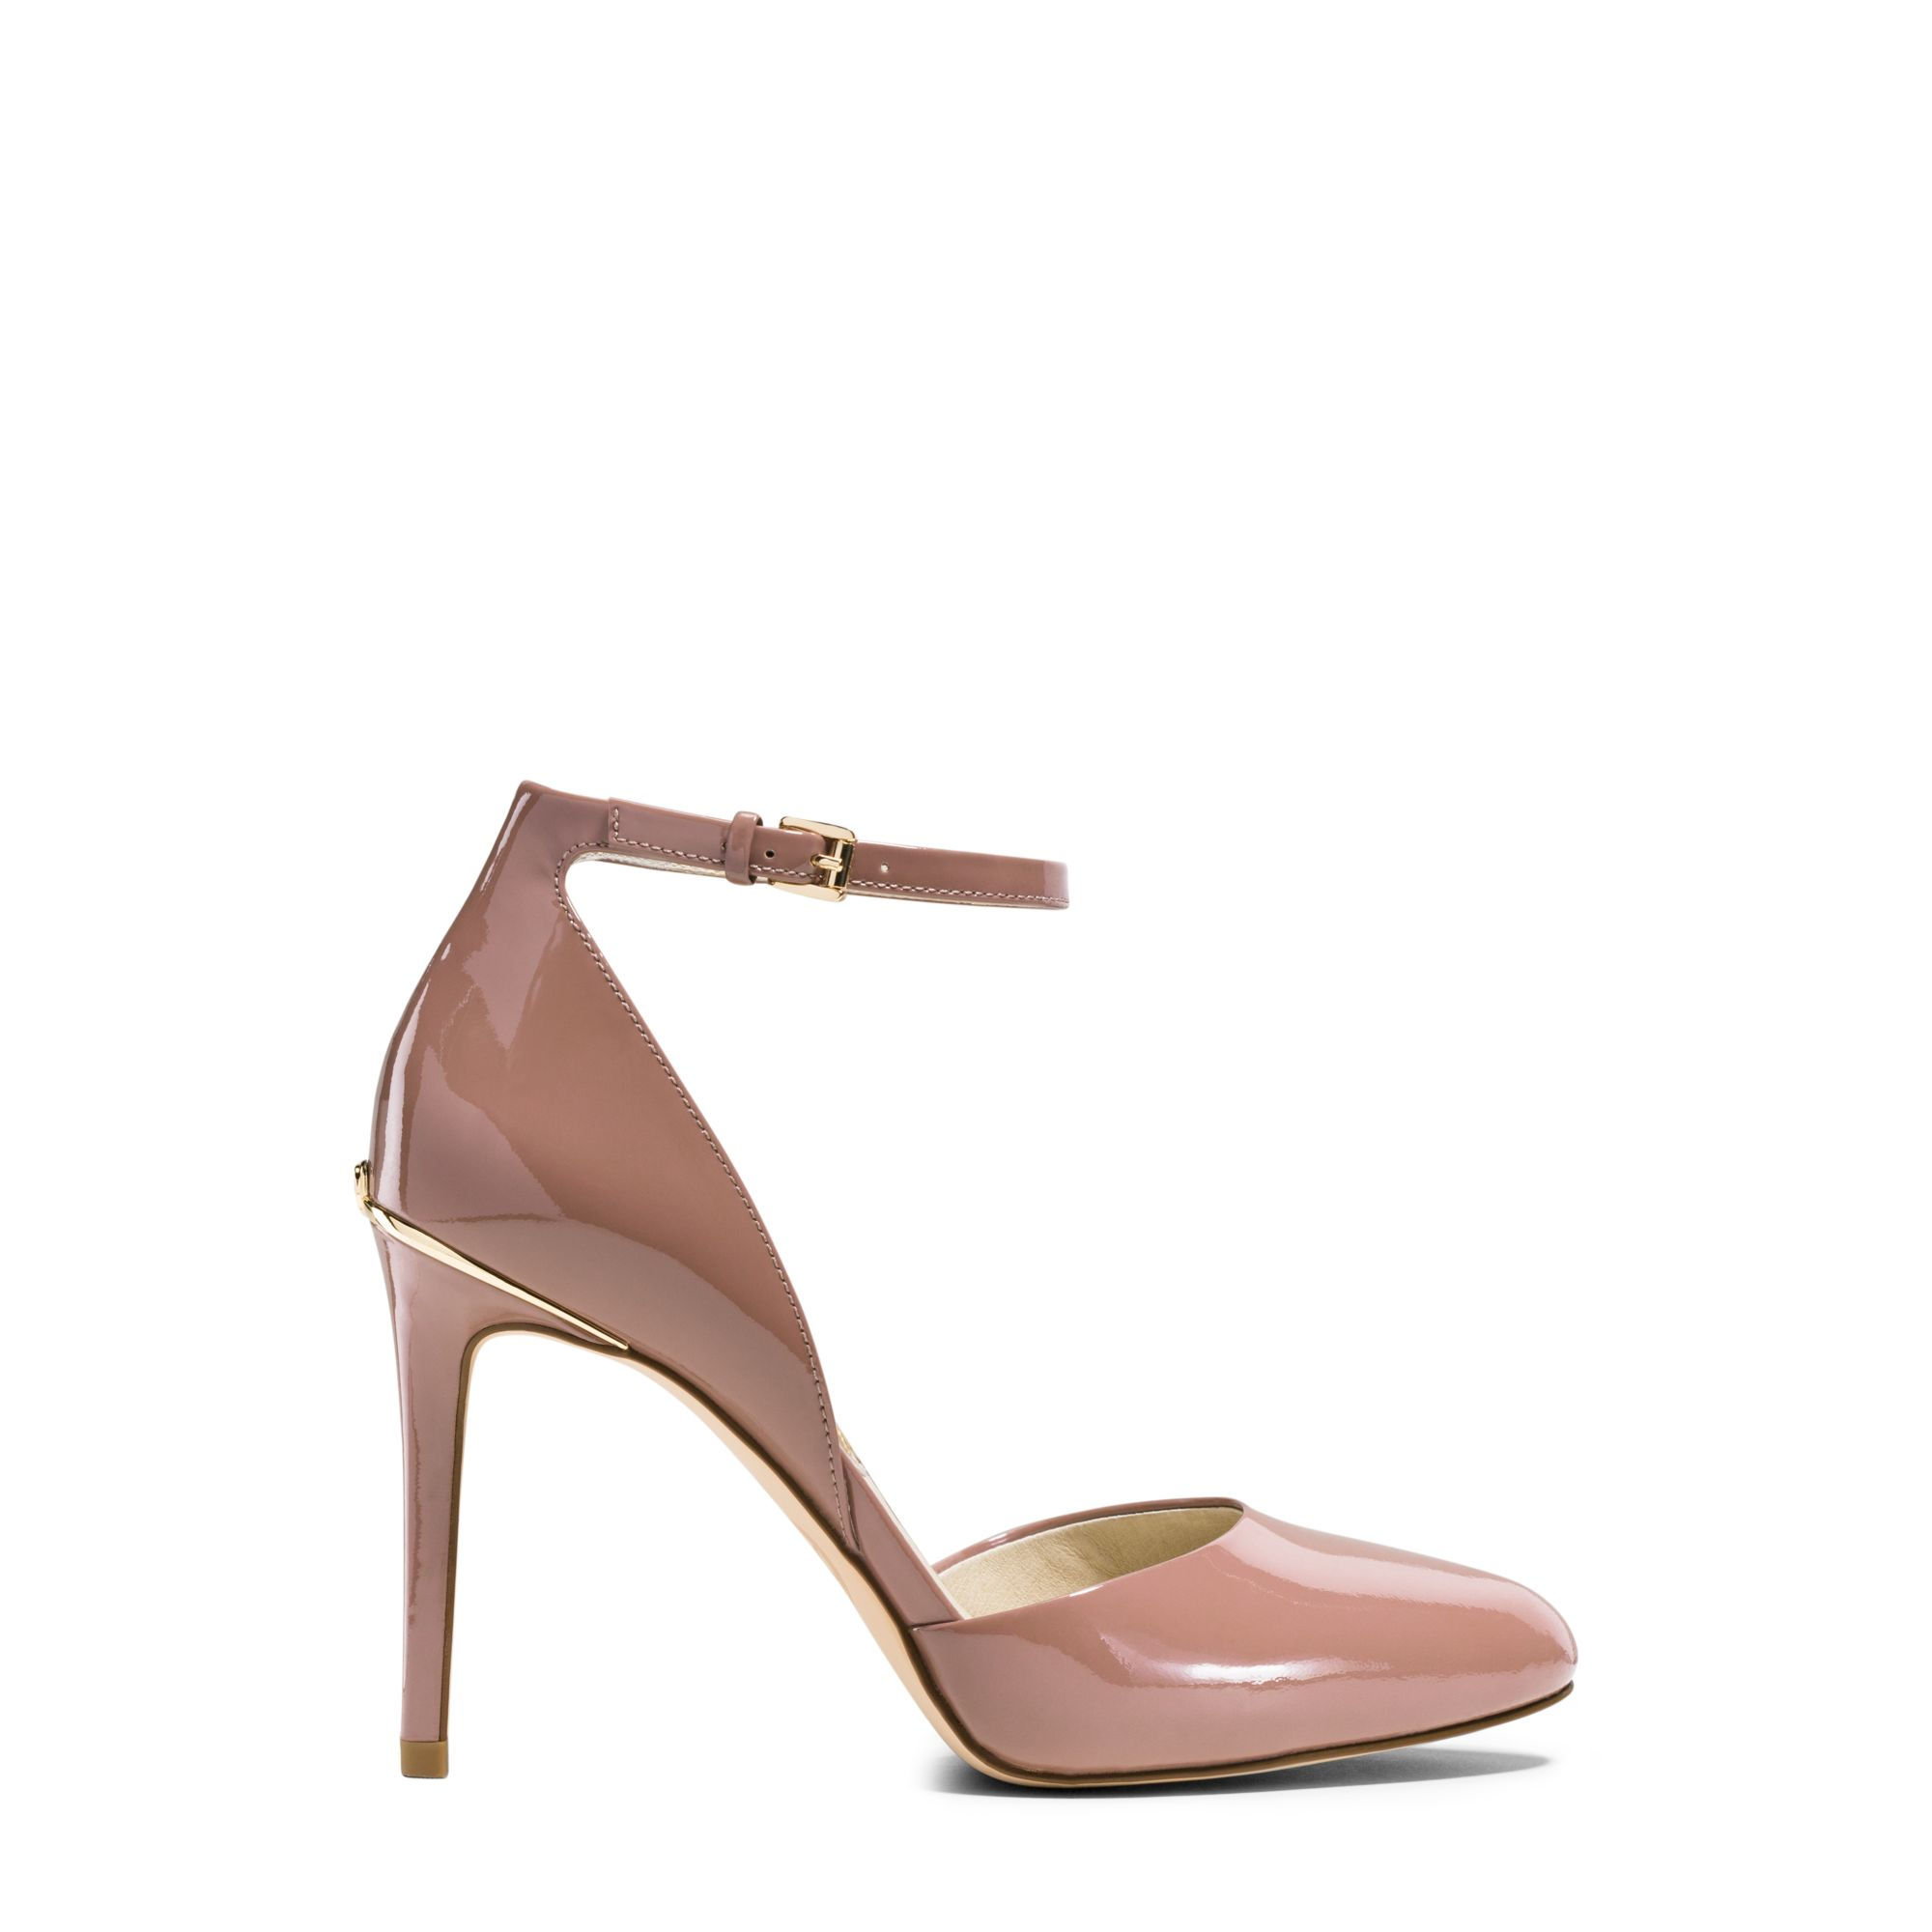 michael kors georgia patent leather pump in pink dusty rose lyst. Black Bedroom Furniture Sets. Home Design Ideas